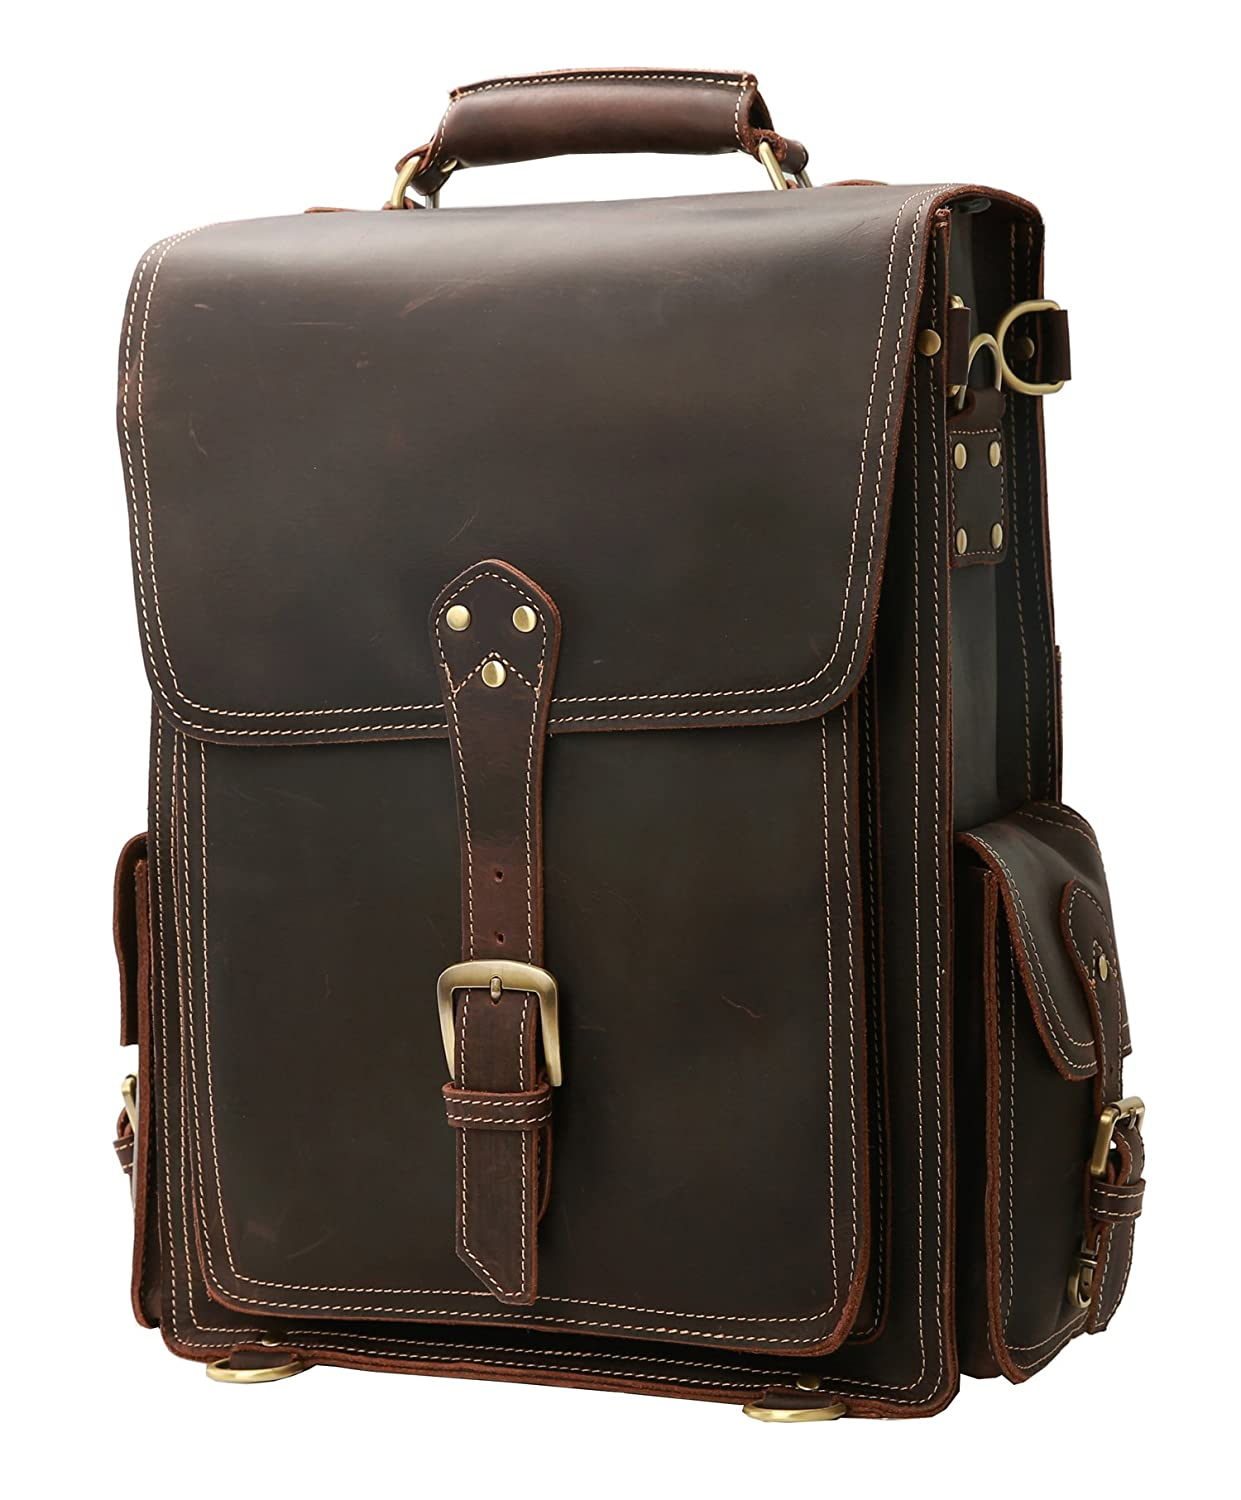 """c1b0e48371 Amazon.com  Iswee Leather 16"""" Laptop Backpack Vintage Travel Rucksack  Overnight Weekender Bag School Daypack  Iswee"""